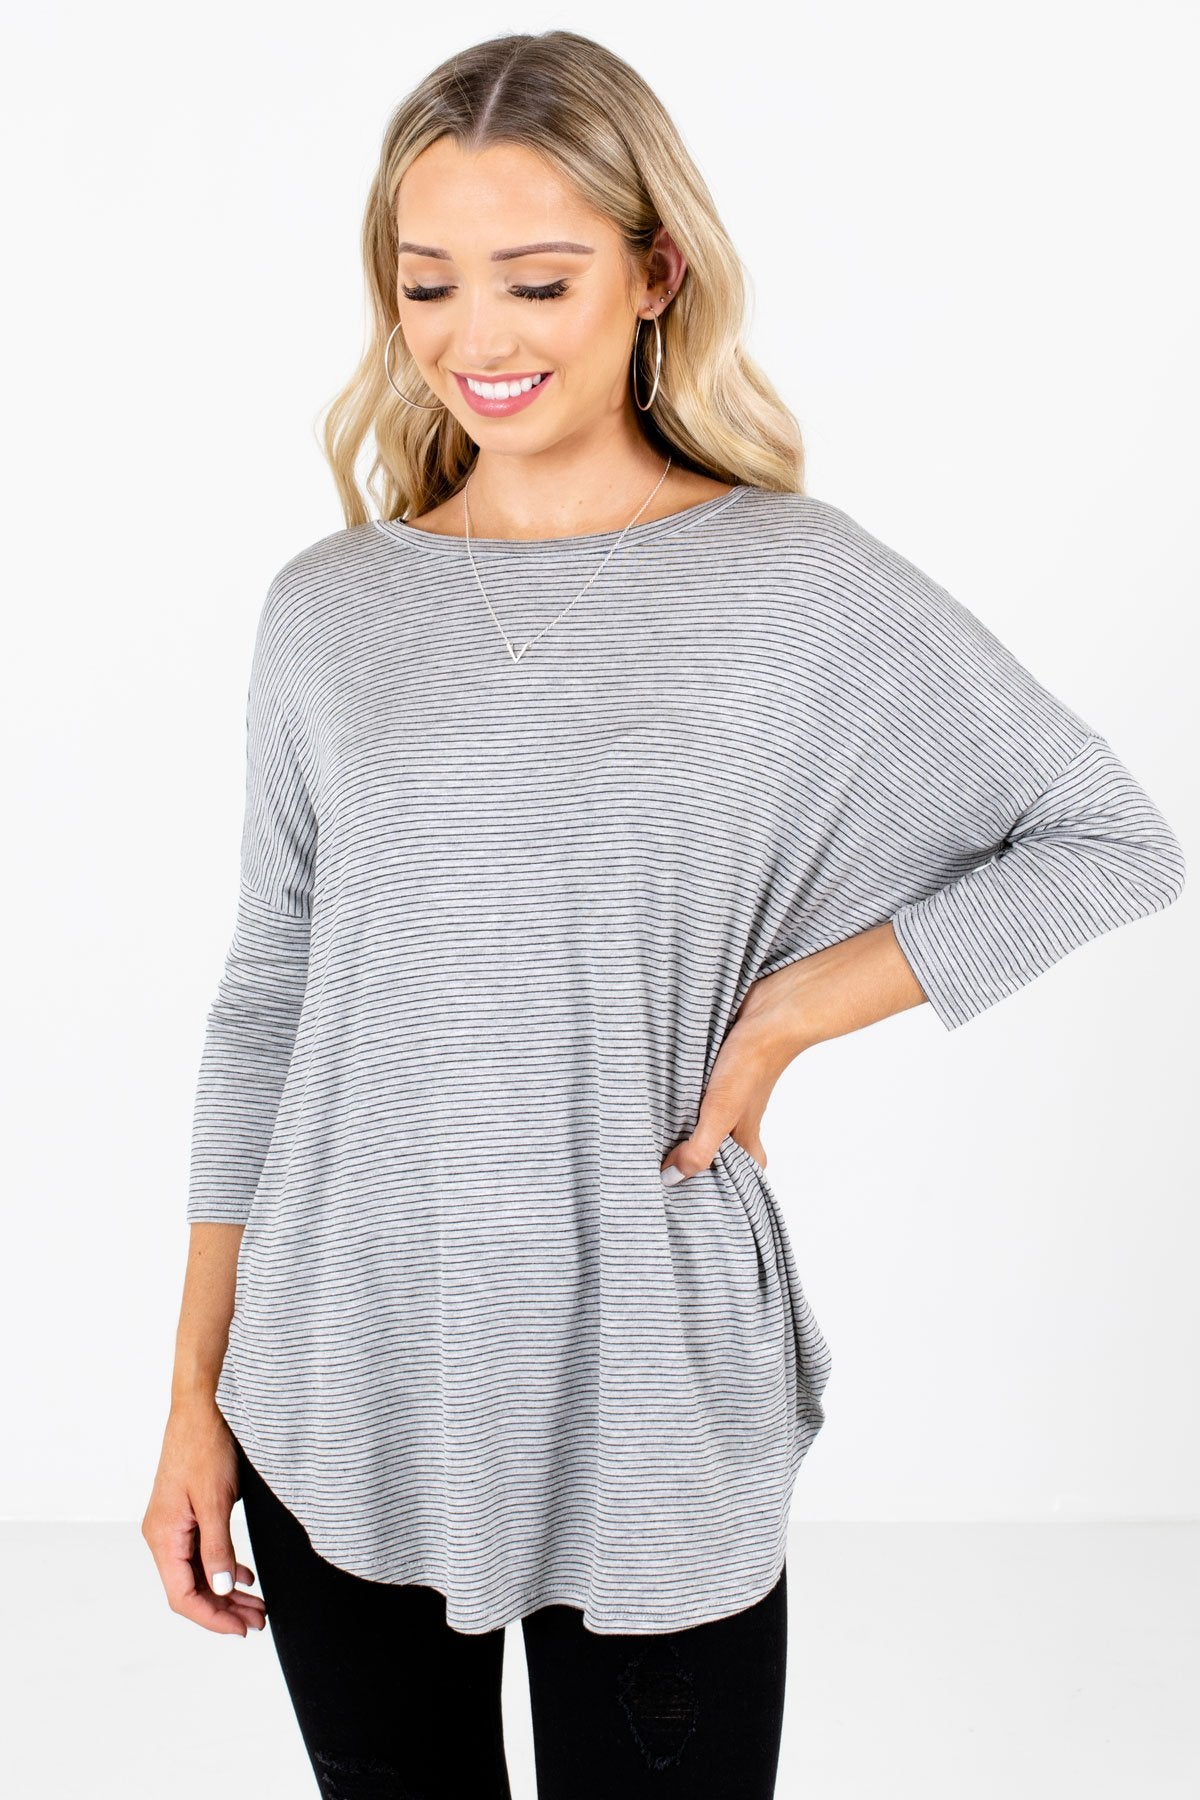 Black and Gray Striped Boutique Tops for Women